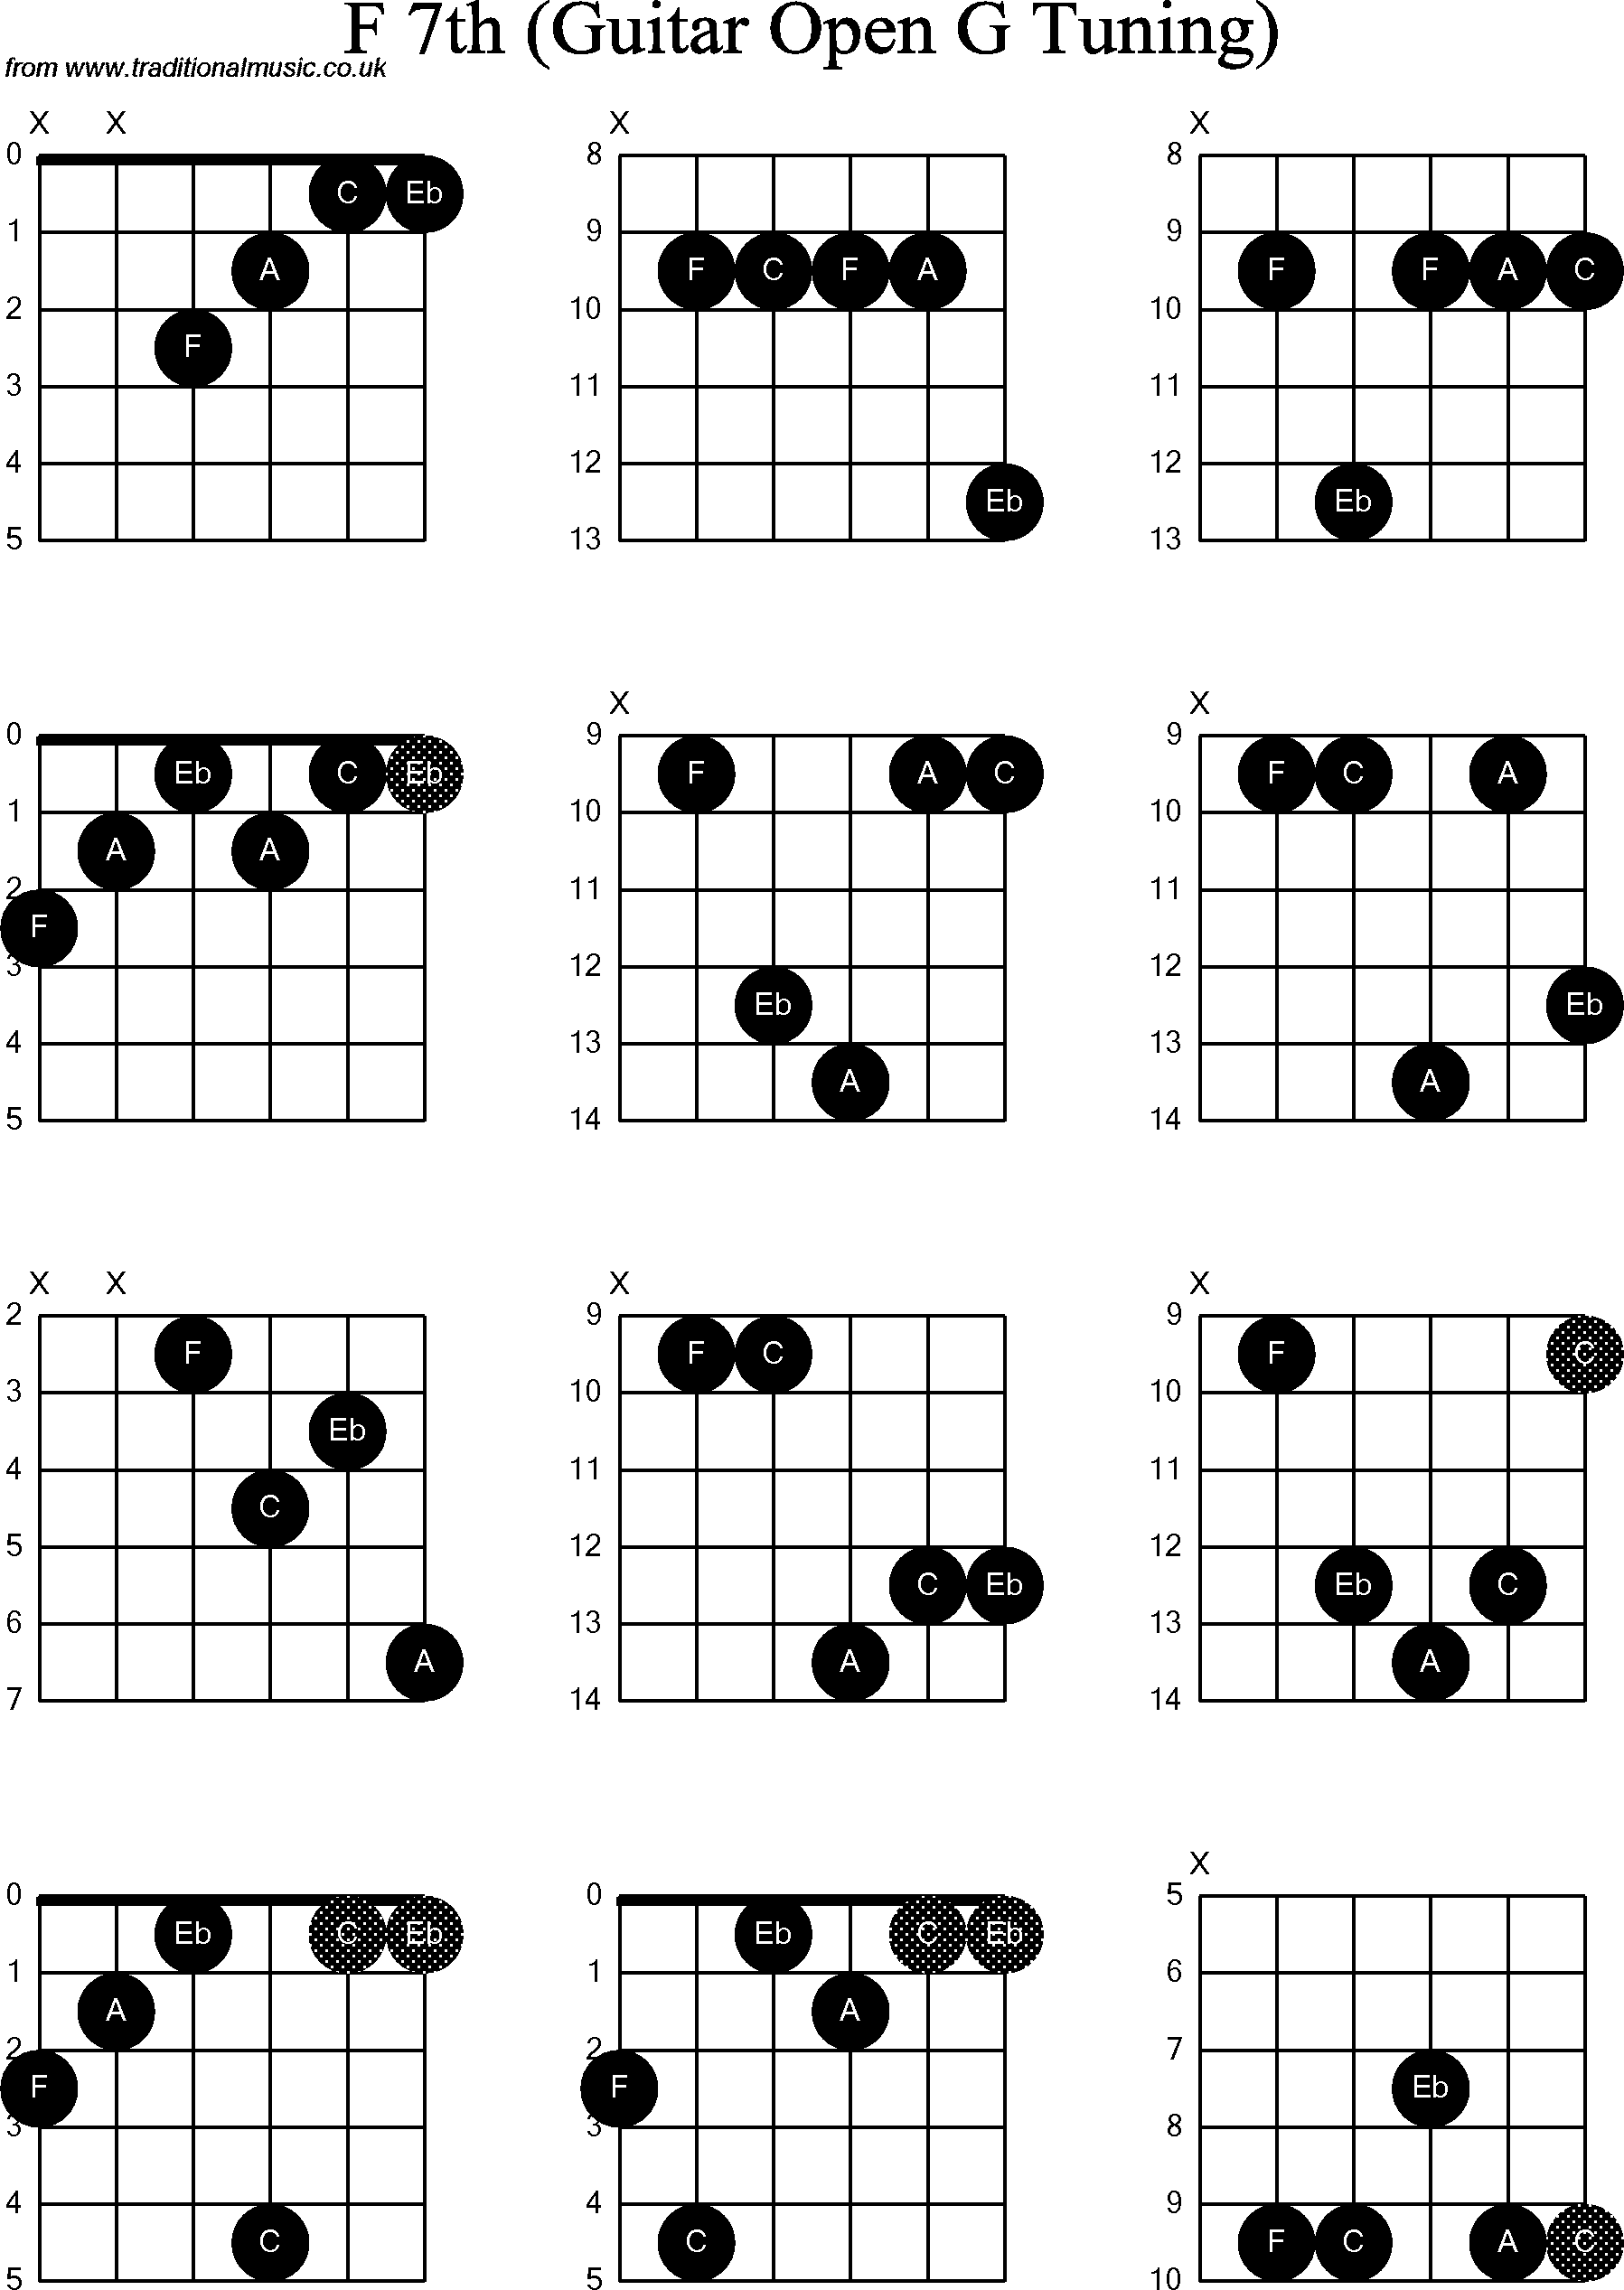 chord diagrams for  dobro f7th